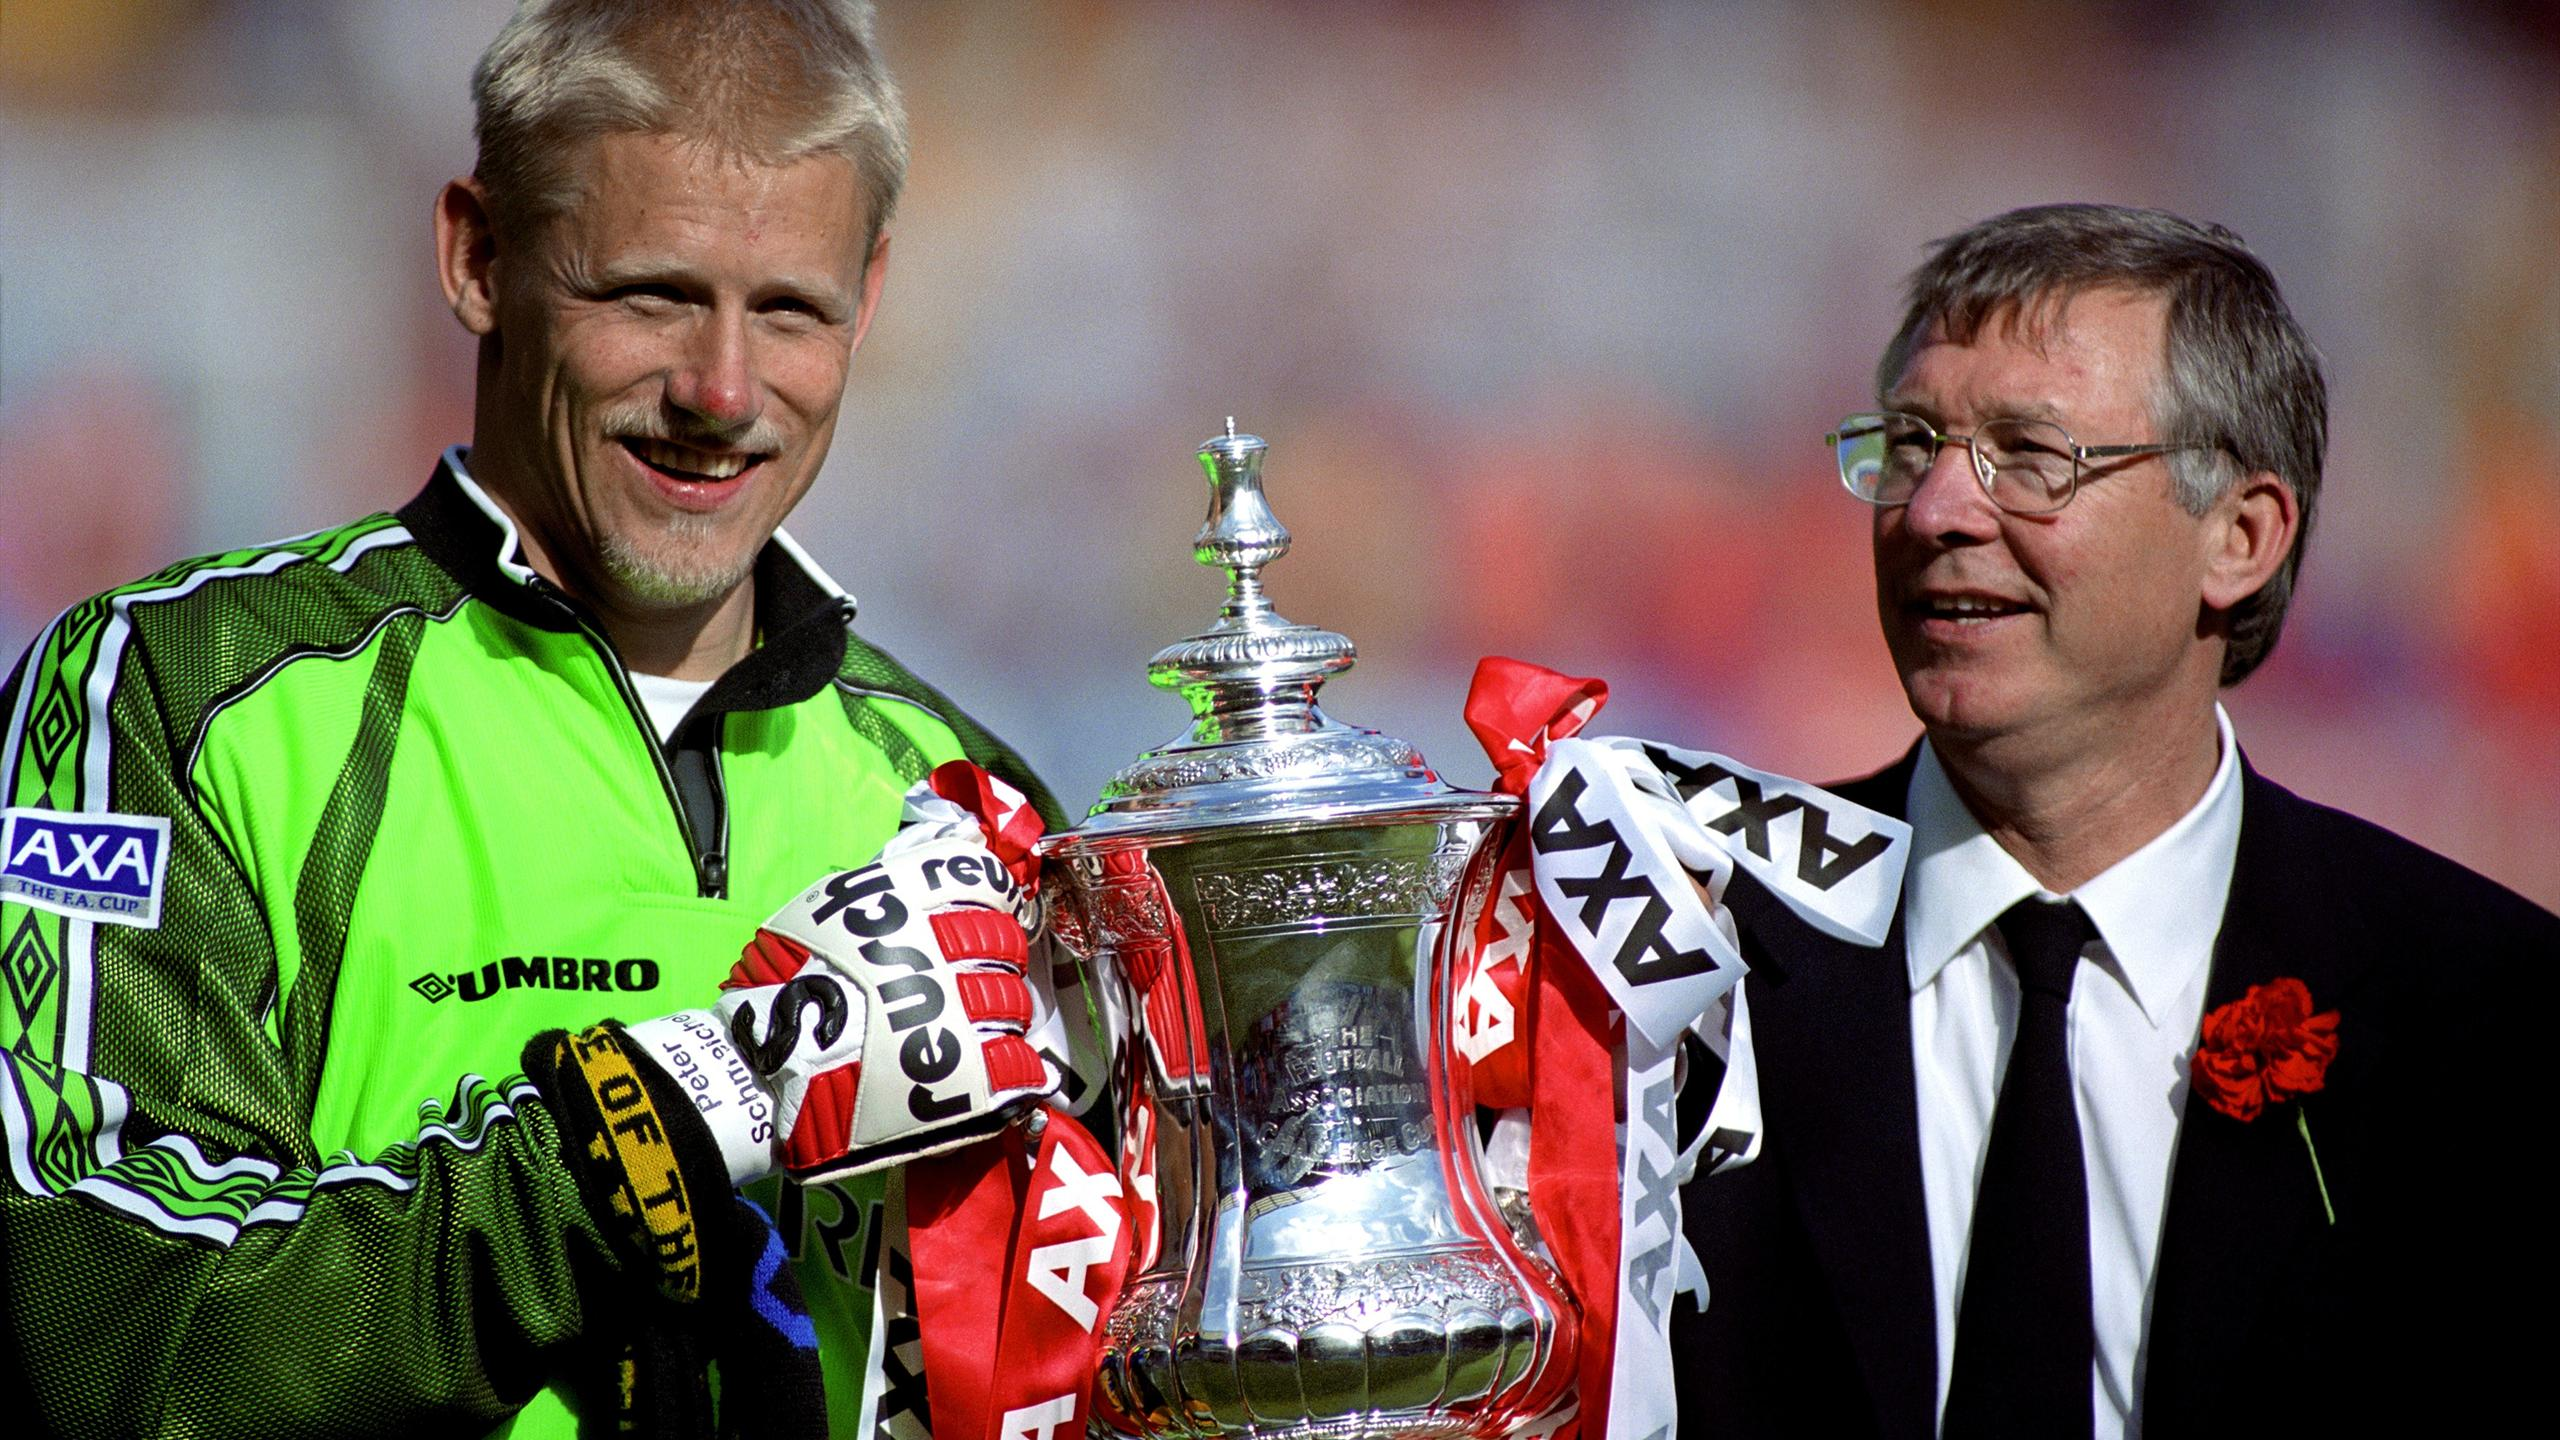 Manchester United's Peter Schmeichel & Manager Alex Ferguson hold the FA Cup trophy